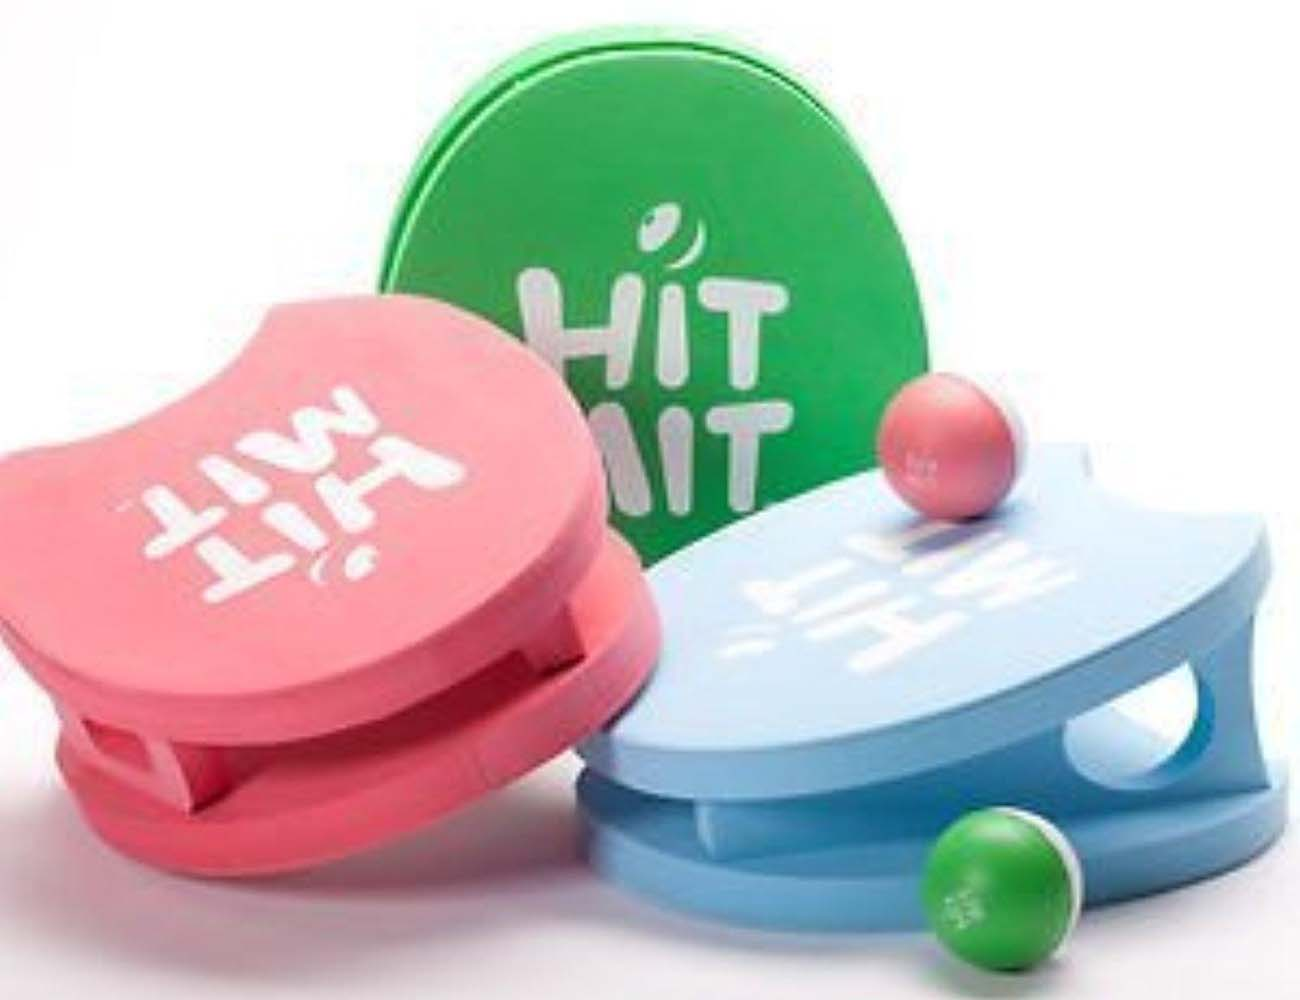 Hit Mit Set – Four Personal Wearable Paddleball Set